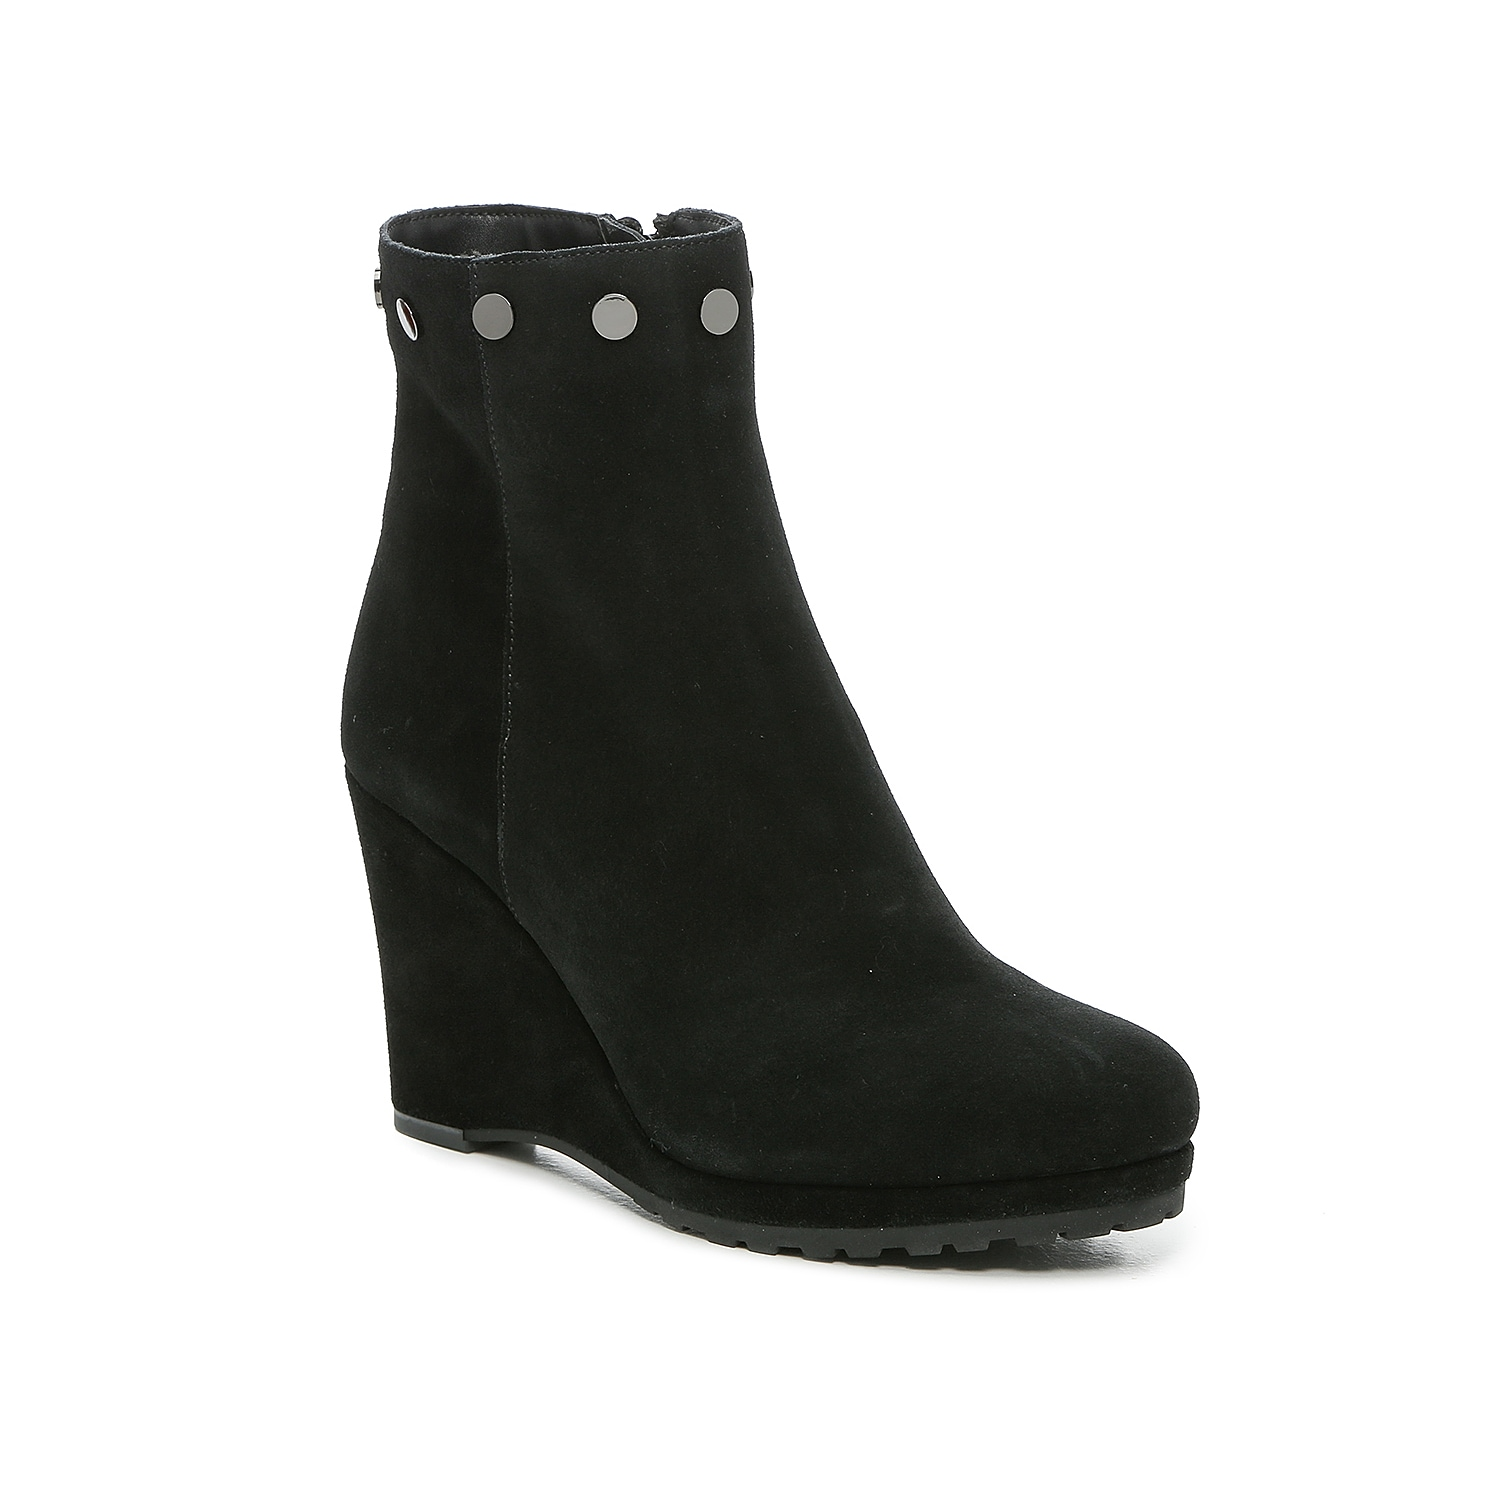 Elevate your shoe collection with the Jili ankle bootie from VANELi. This pair with trimmed with flat metallic studs and raised by a high-heel wedge in a seamless, all-suede design. Click here for Boot Measuring Guide.